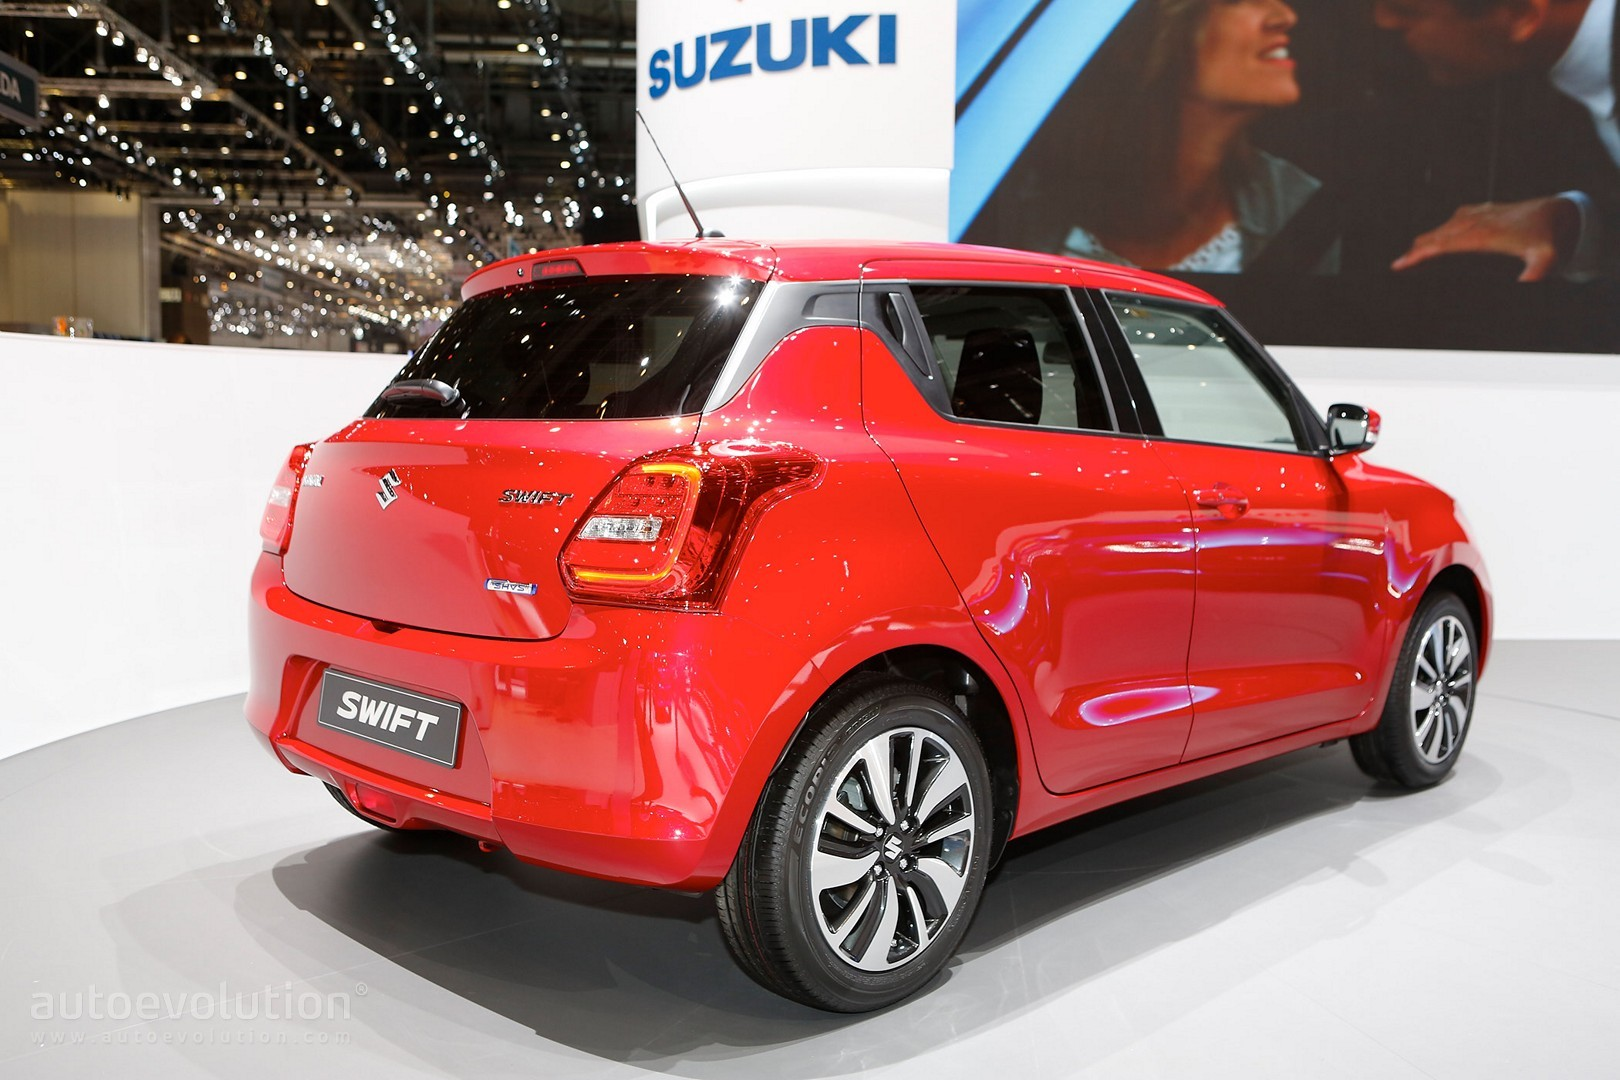 2017 suzuki swift makes european debut in geneva. Black Bedroom Furniture Sets. Home Design Ideas